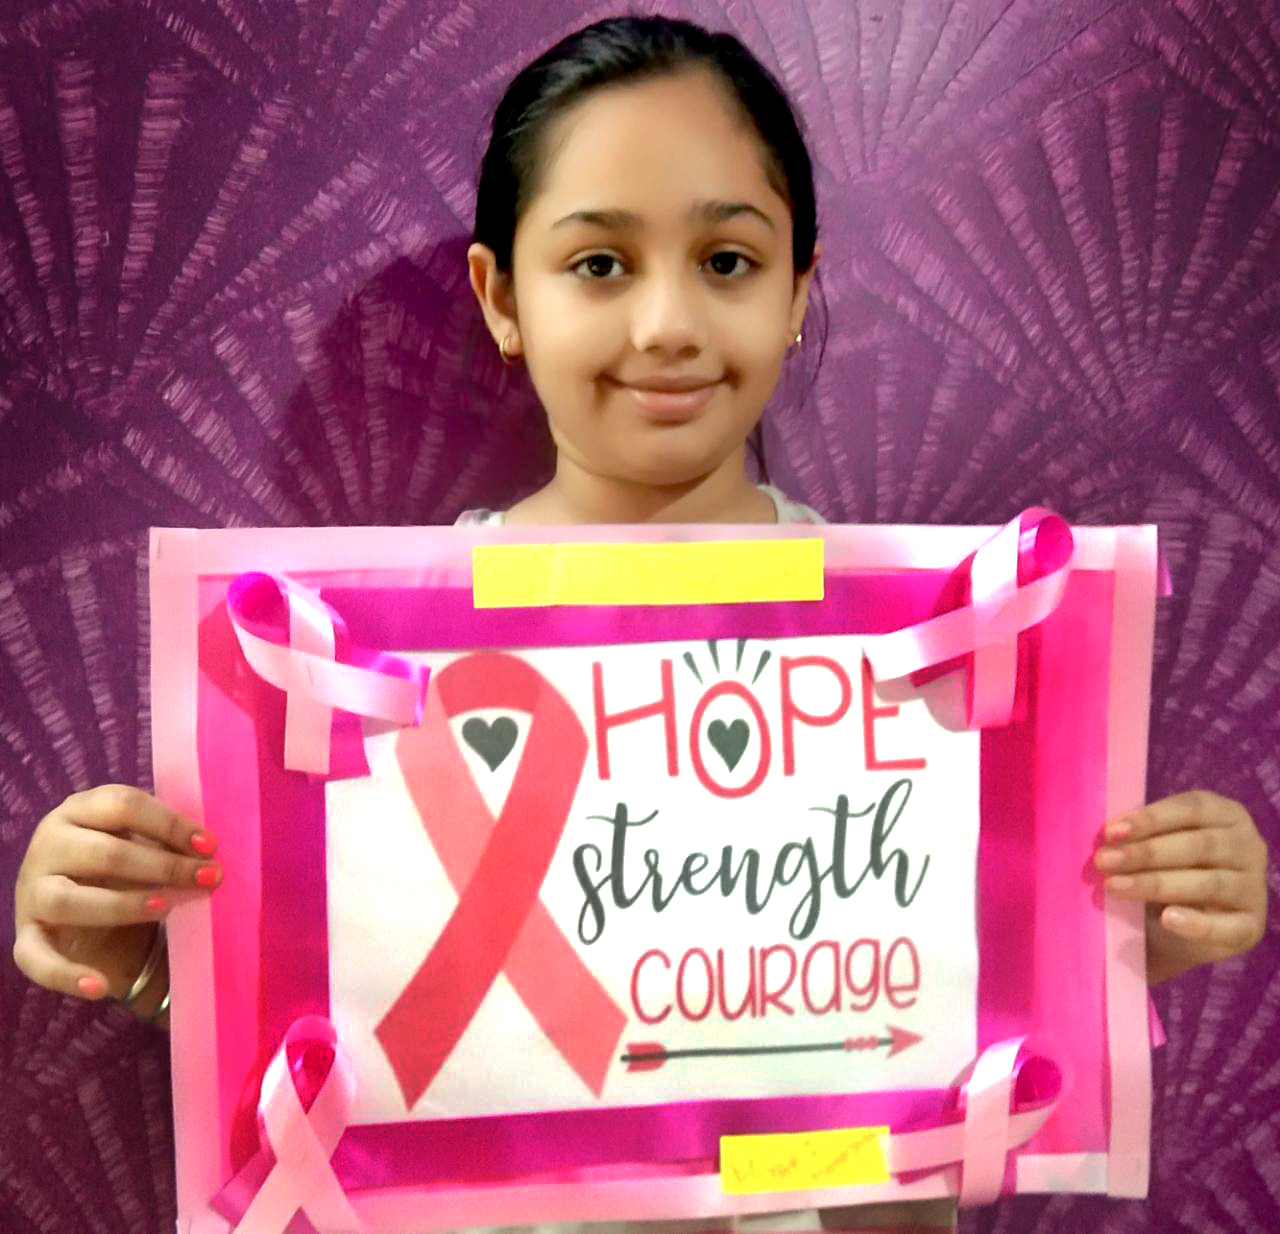 CANCER AWARENESS WITH POSTER MAKING